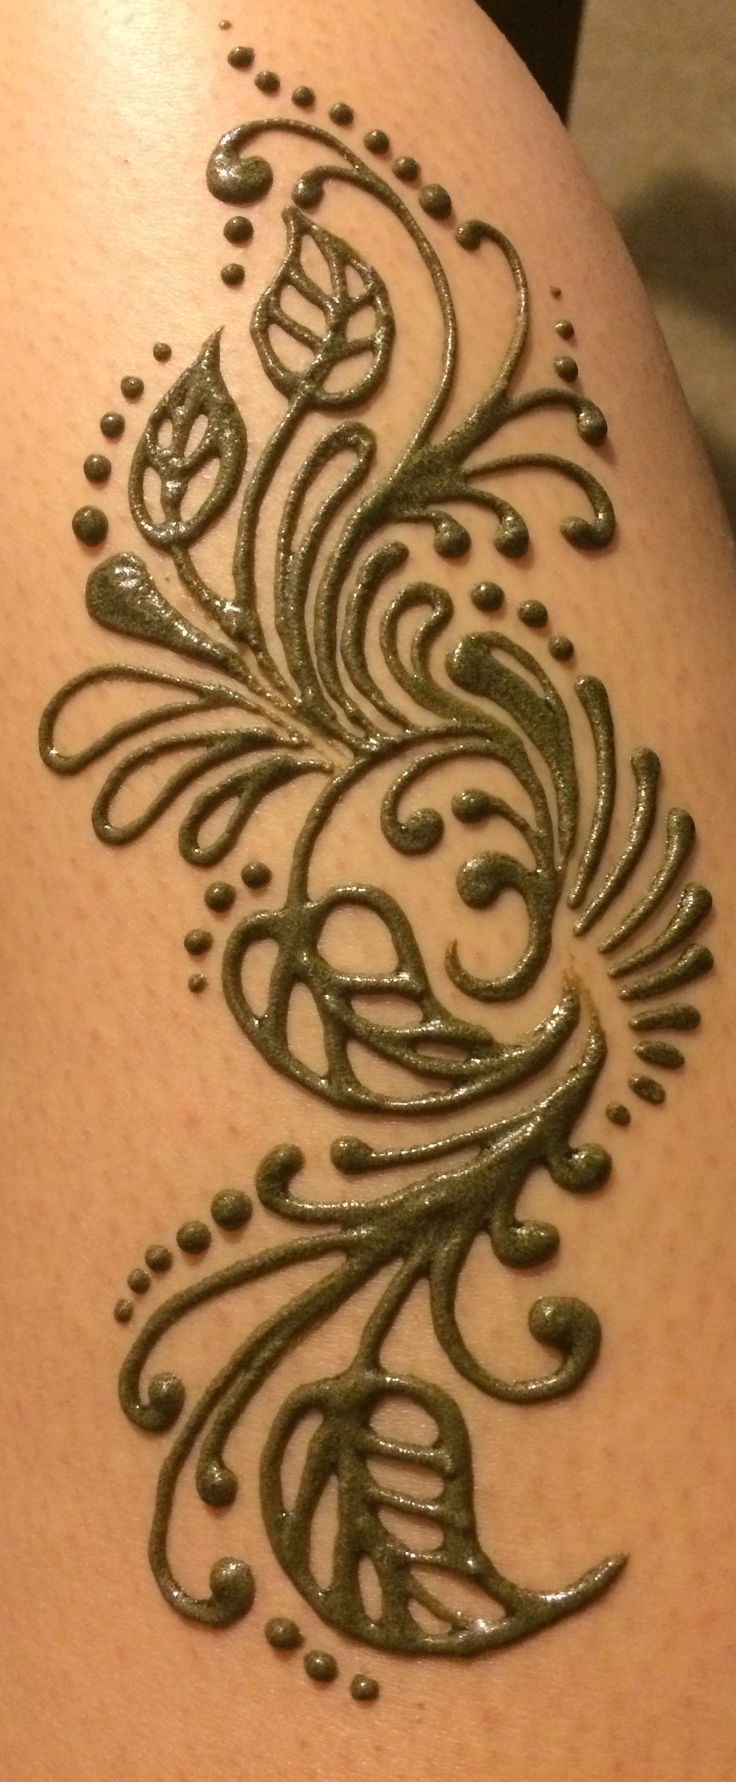 196 best images about simple henna designs on pinterest henna temporary henna tattoos and. Black Bedroom Furniture Sets. Home Design Ideas